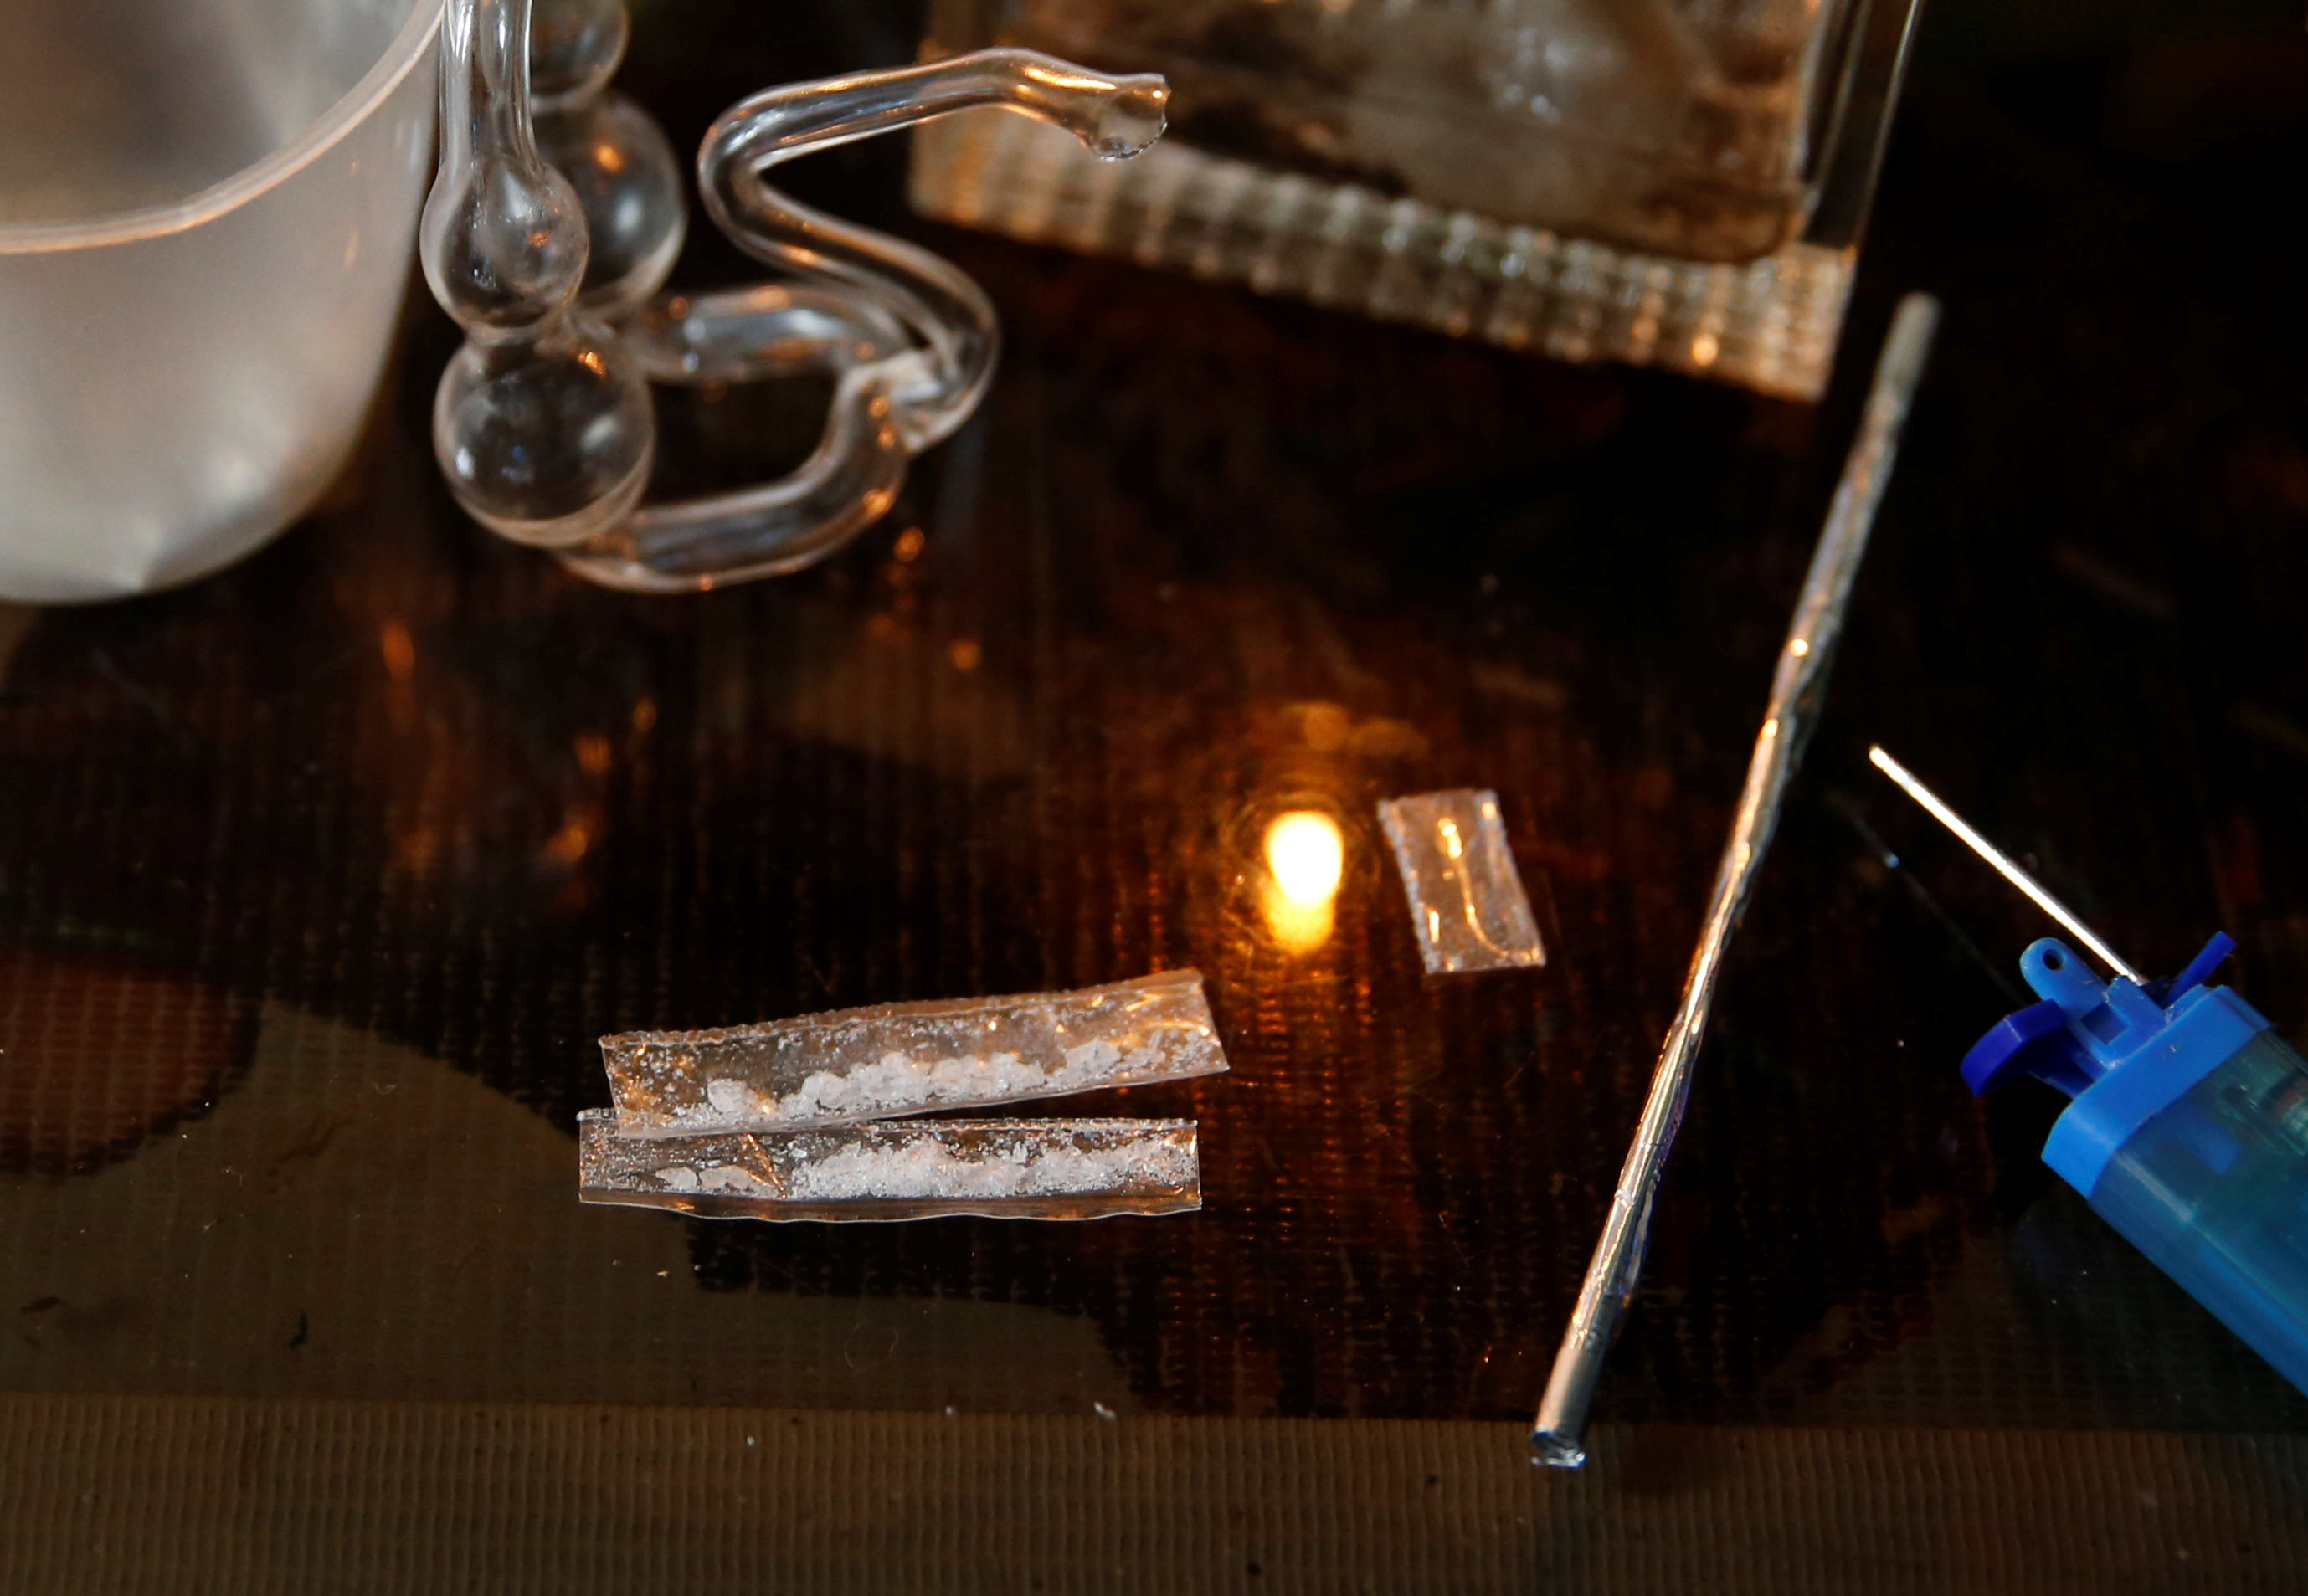 Sachets of syabu, or methamphetamine are pictured among other drugs paraphernalia at an undisclosed drug den in Manila June 20, 2016. — Reuters pic